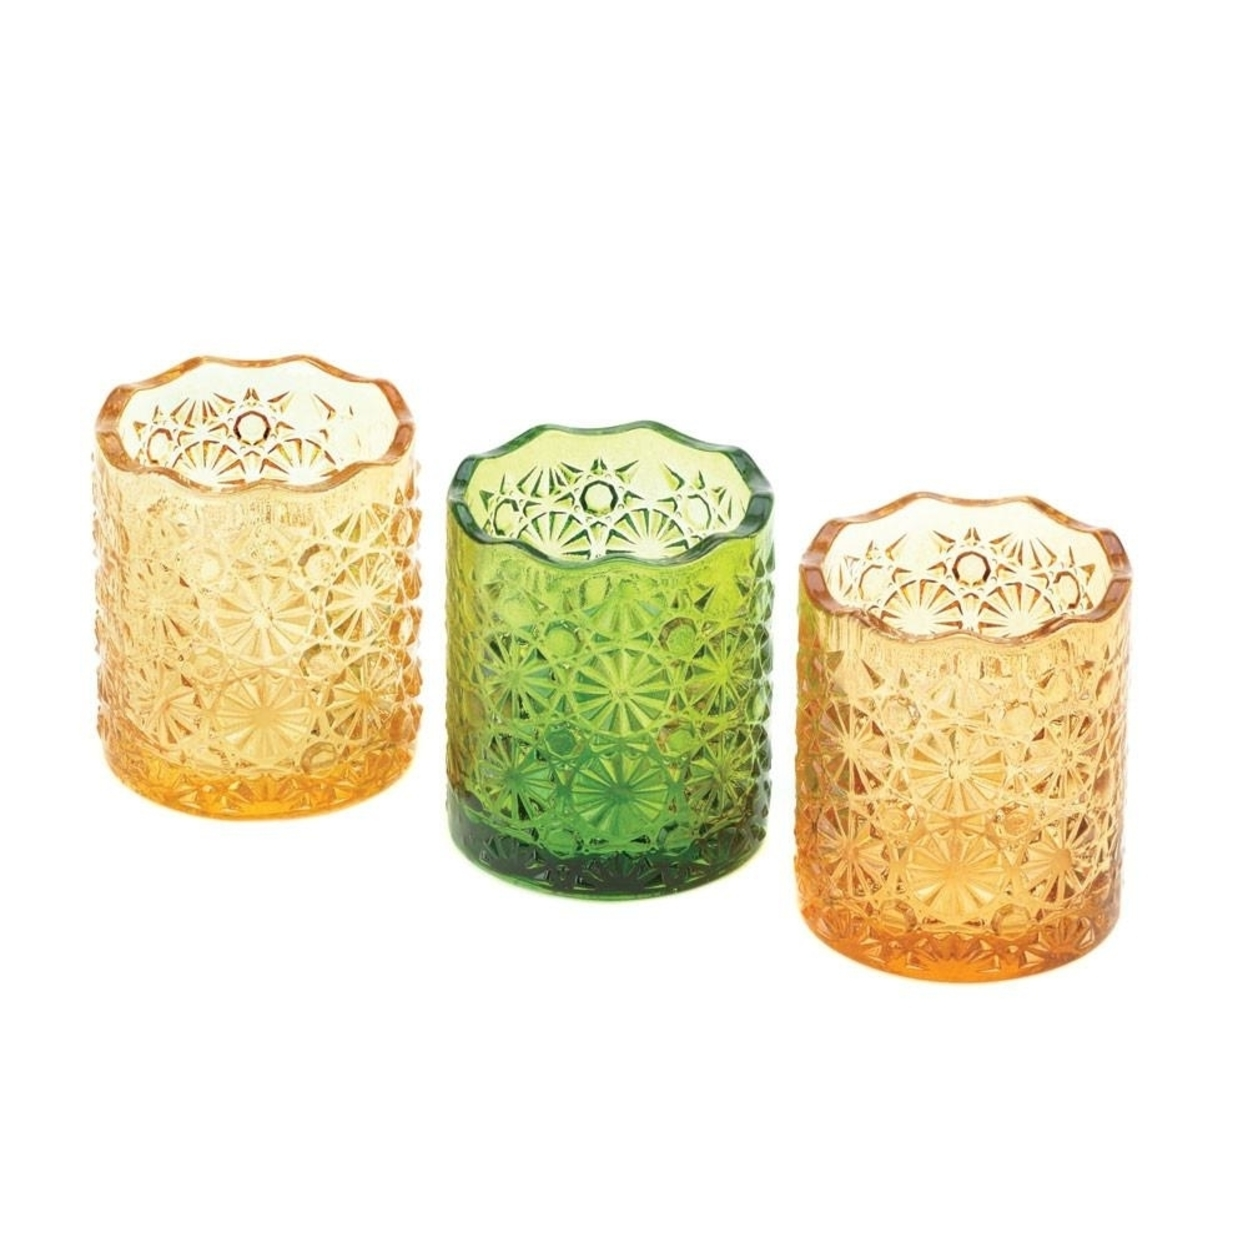 Lemon Lime And Orange Colored Candle Cups 55aea331a2771c7a018b459b